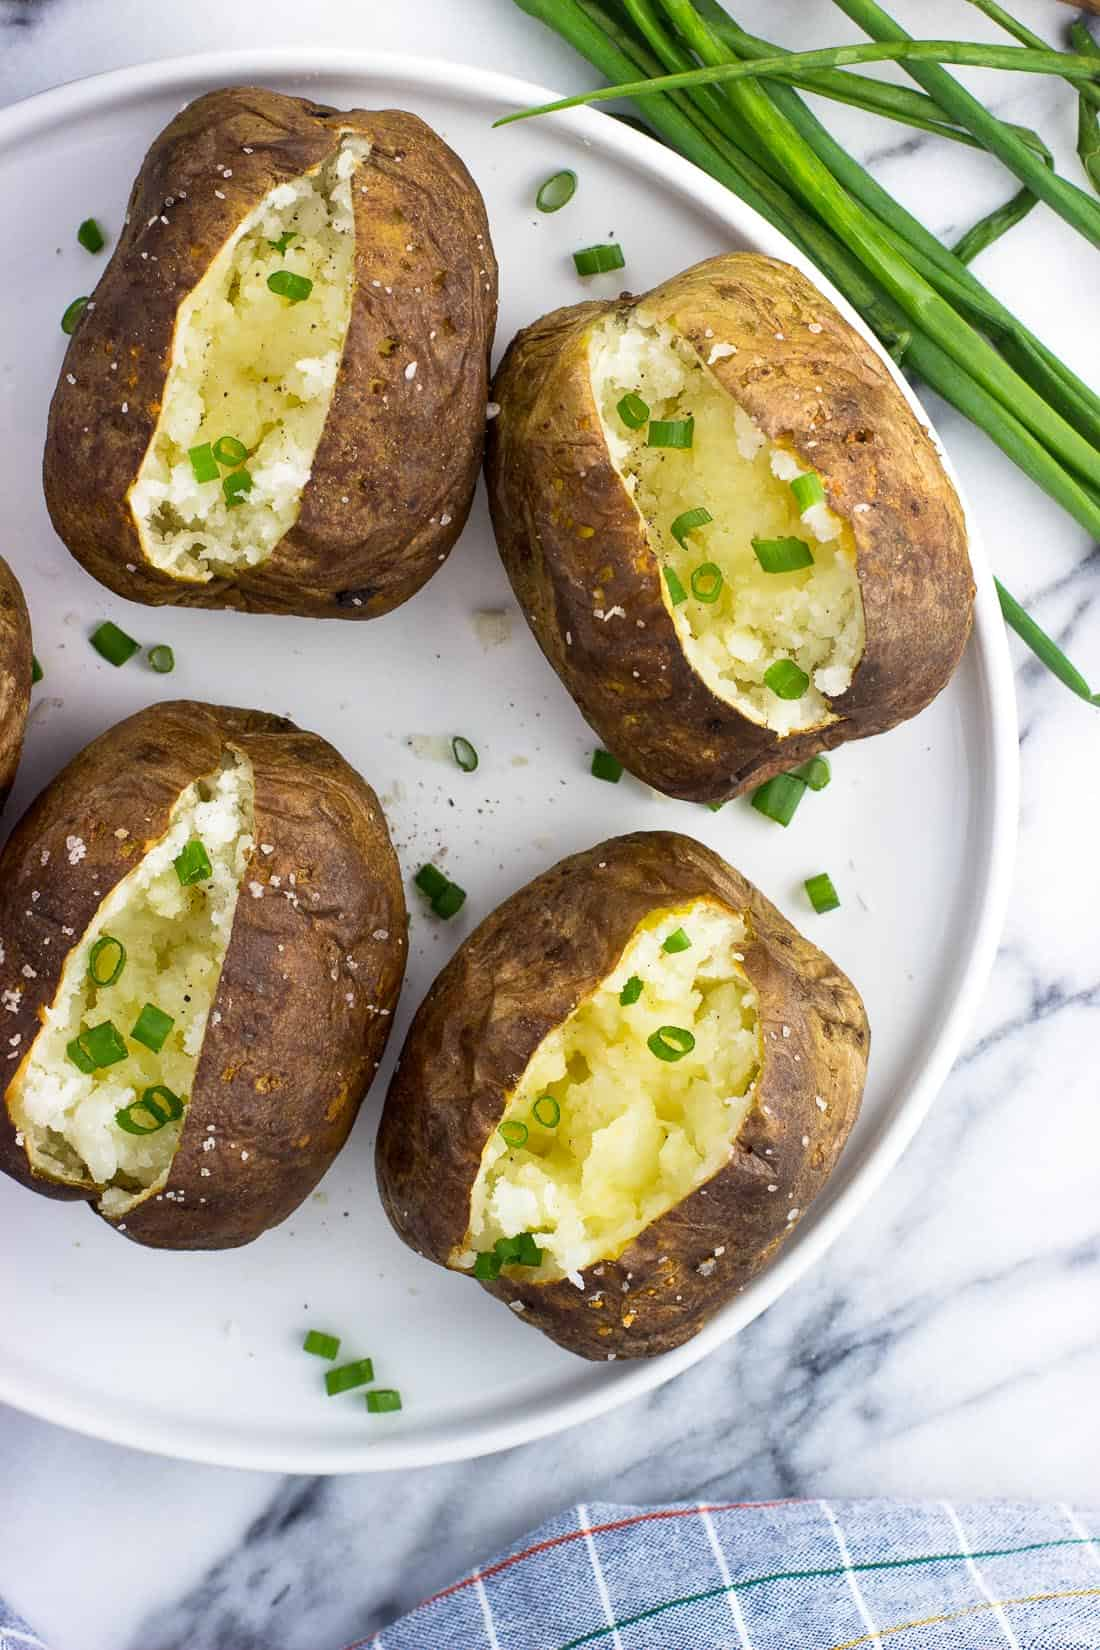 An overhead picture of air fryer baked potatoes on a plate